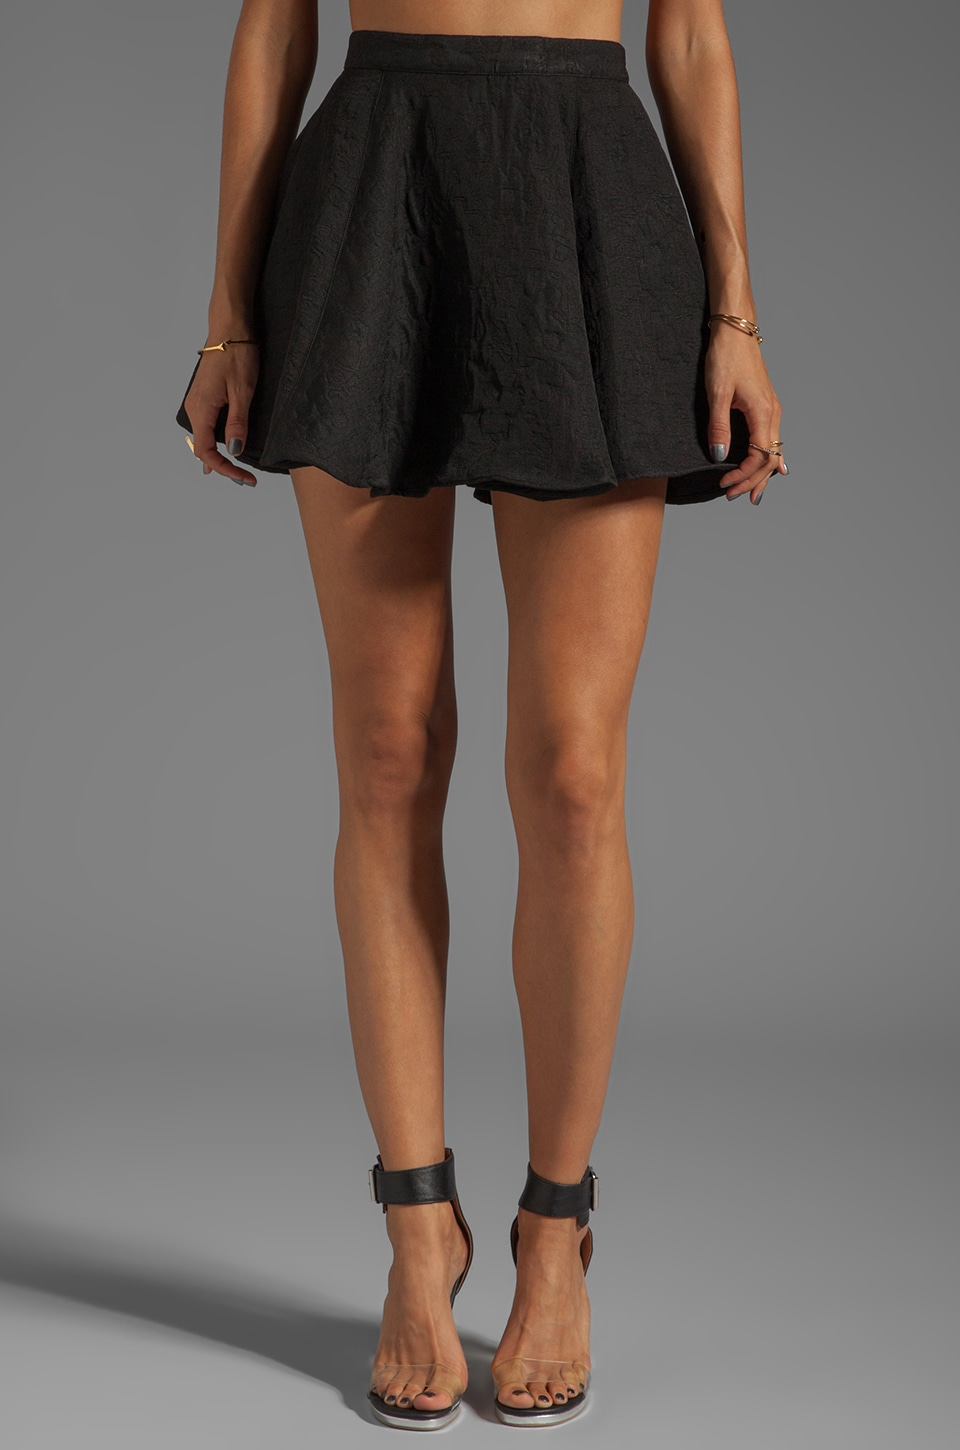 Finders Keepers Great Deception Skirt in Black